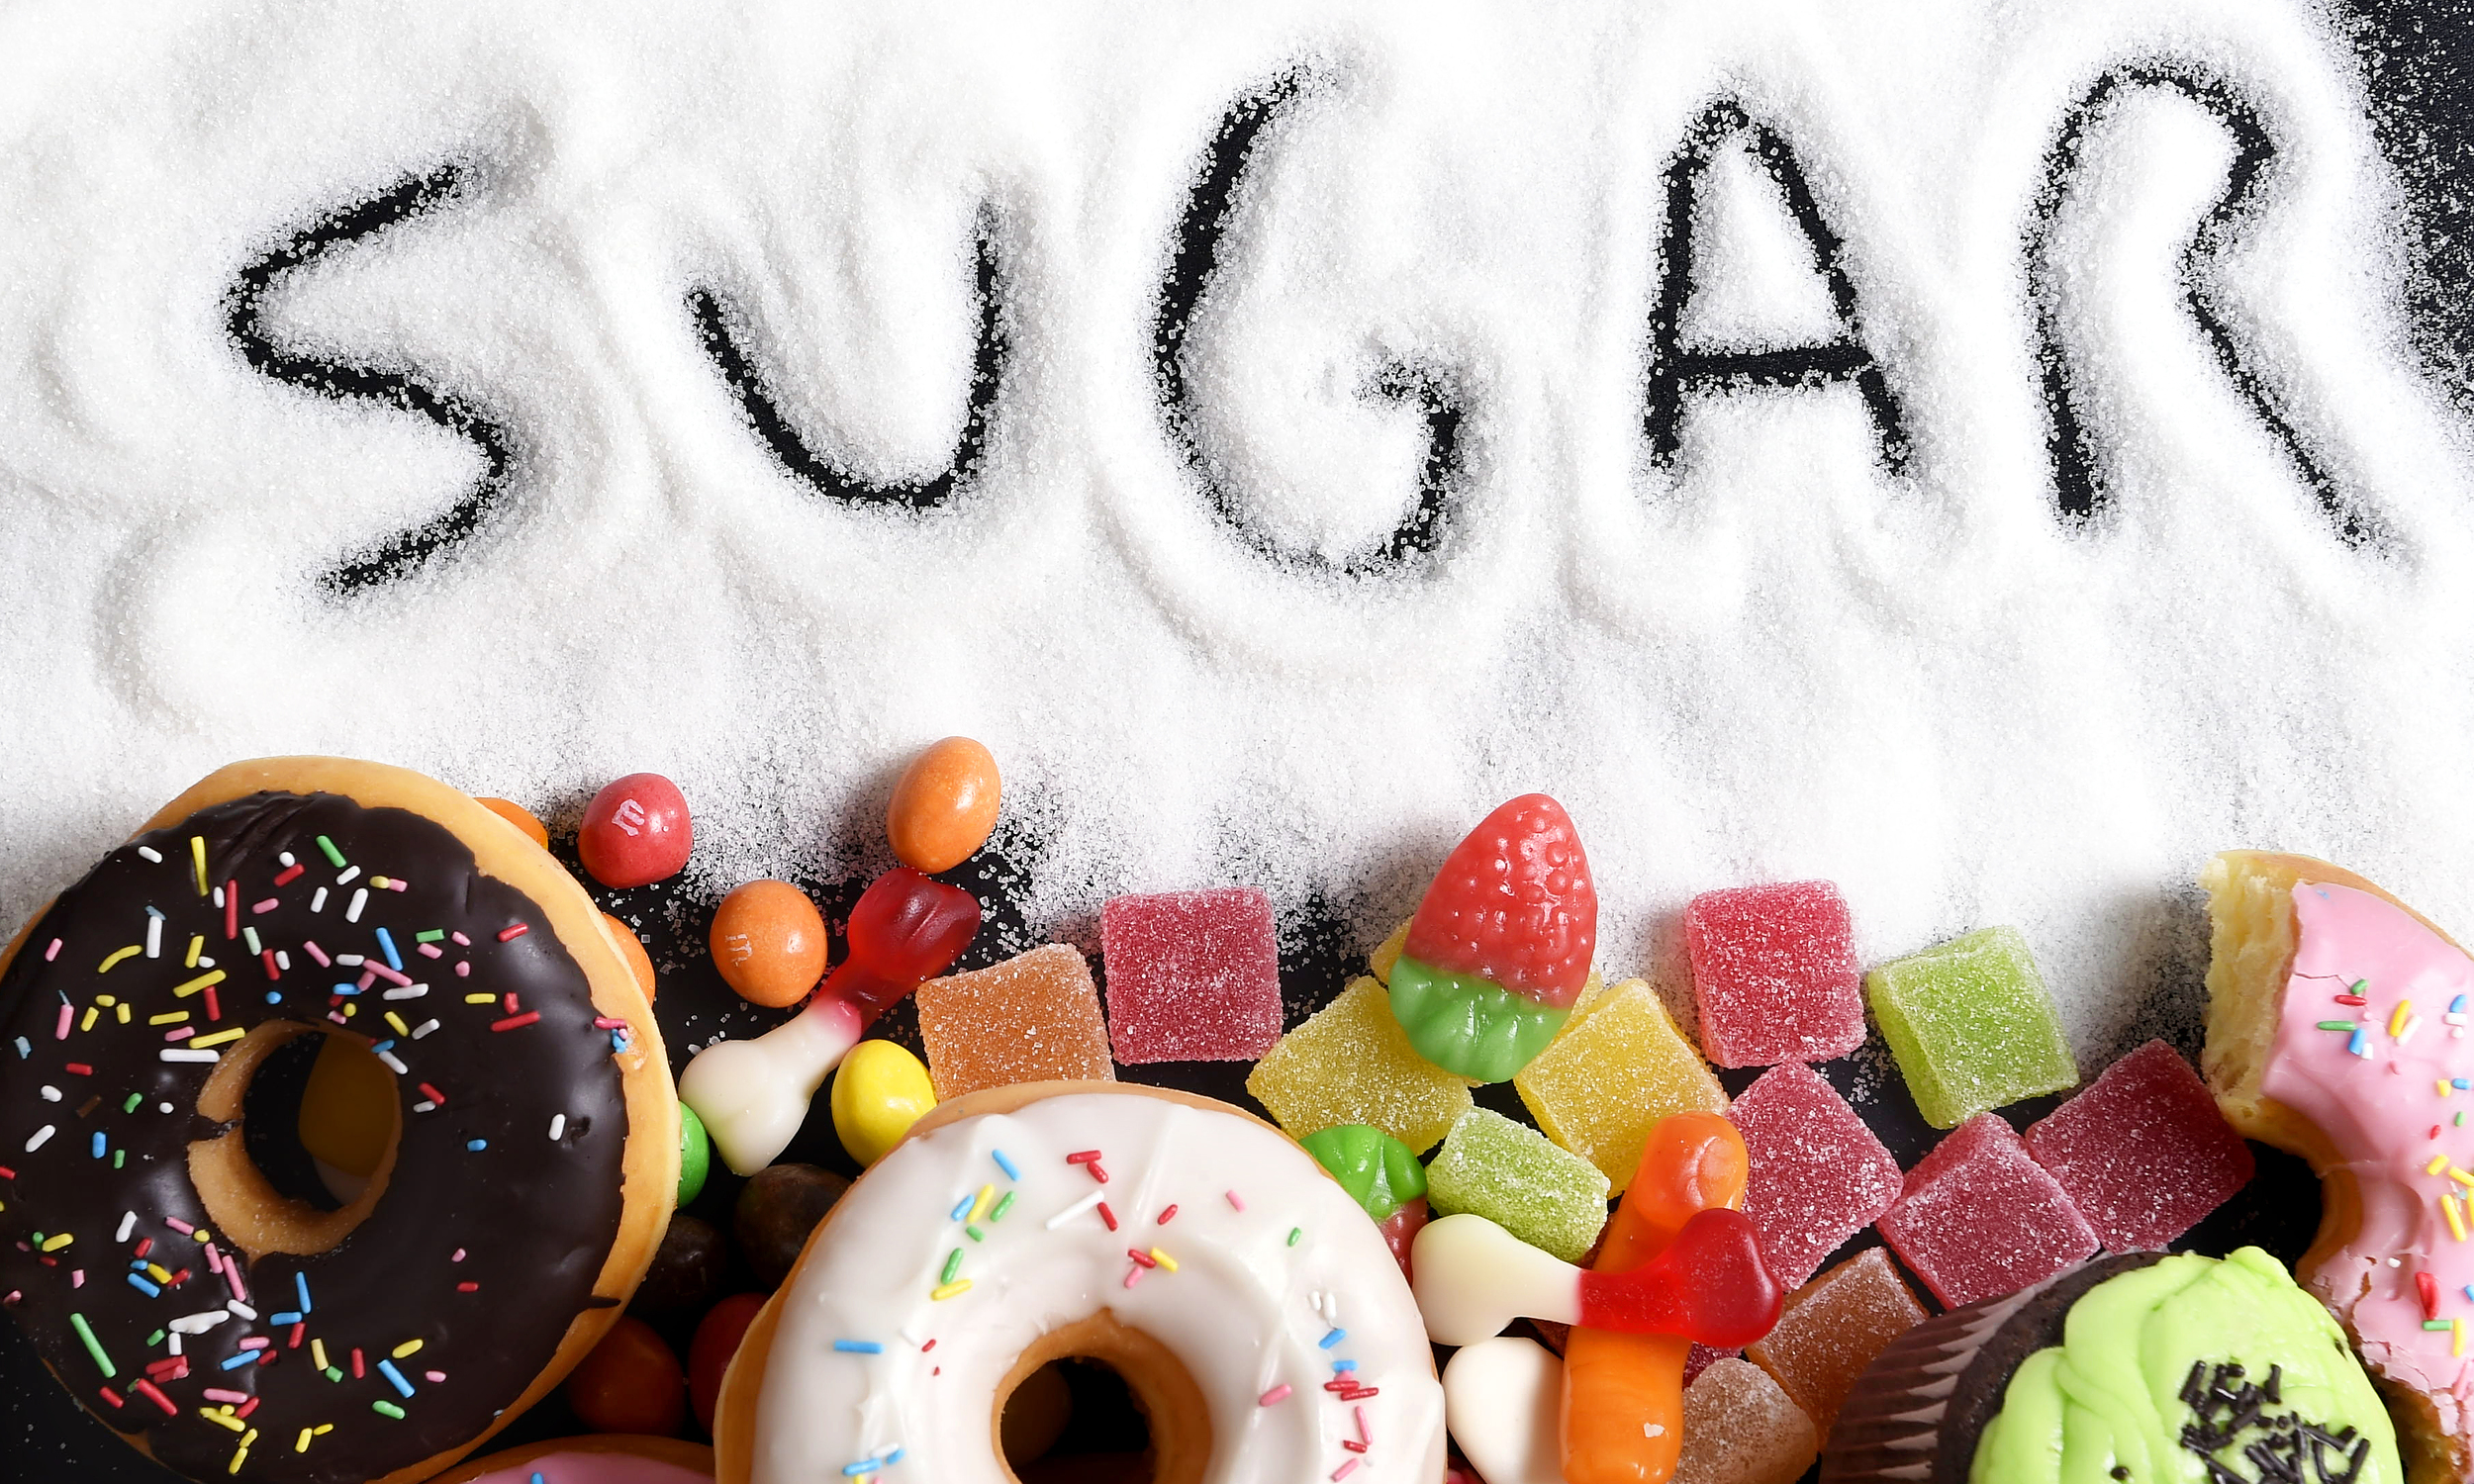 Reconsidering Your Love Of All Things Sugar-Filled And Sweet